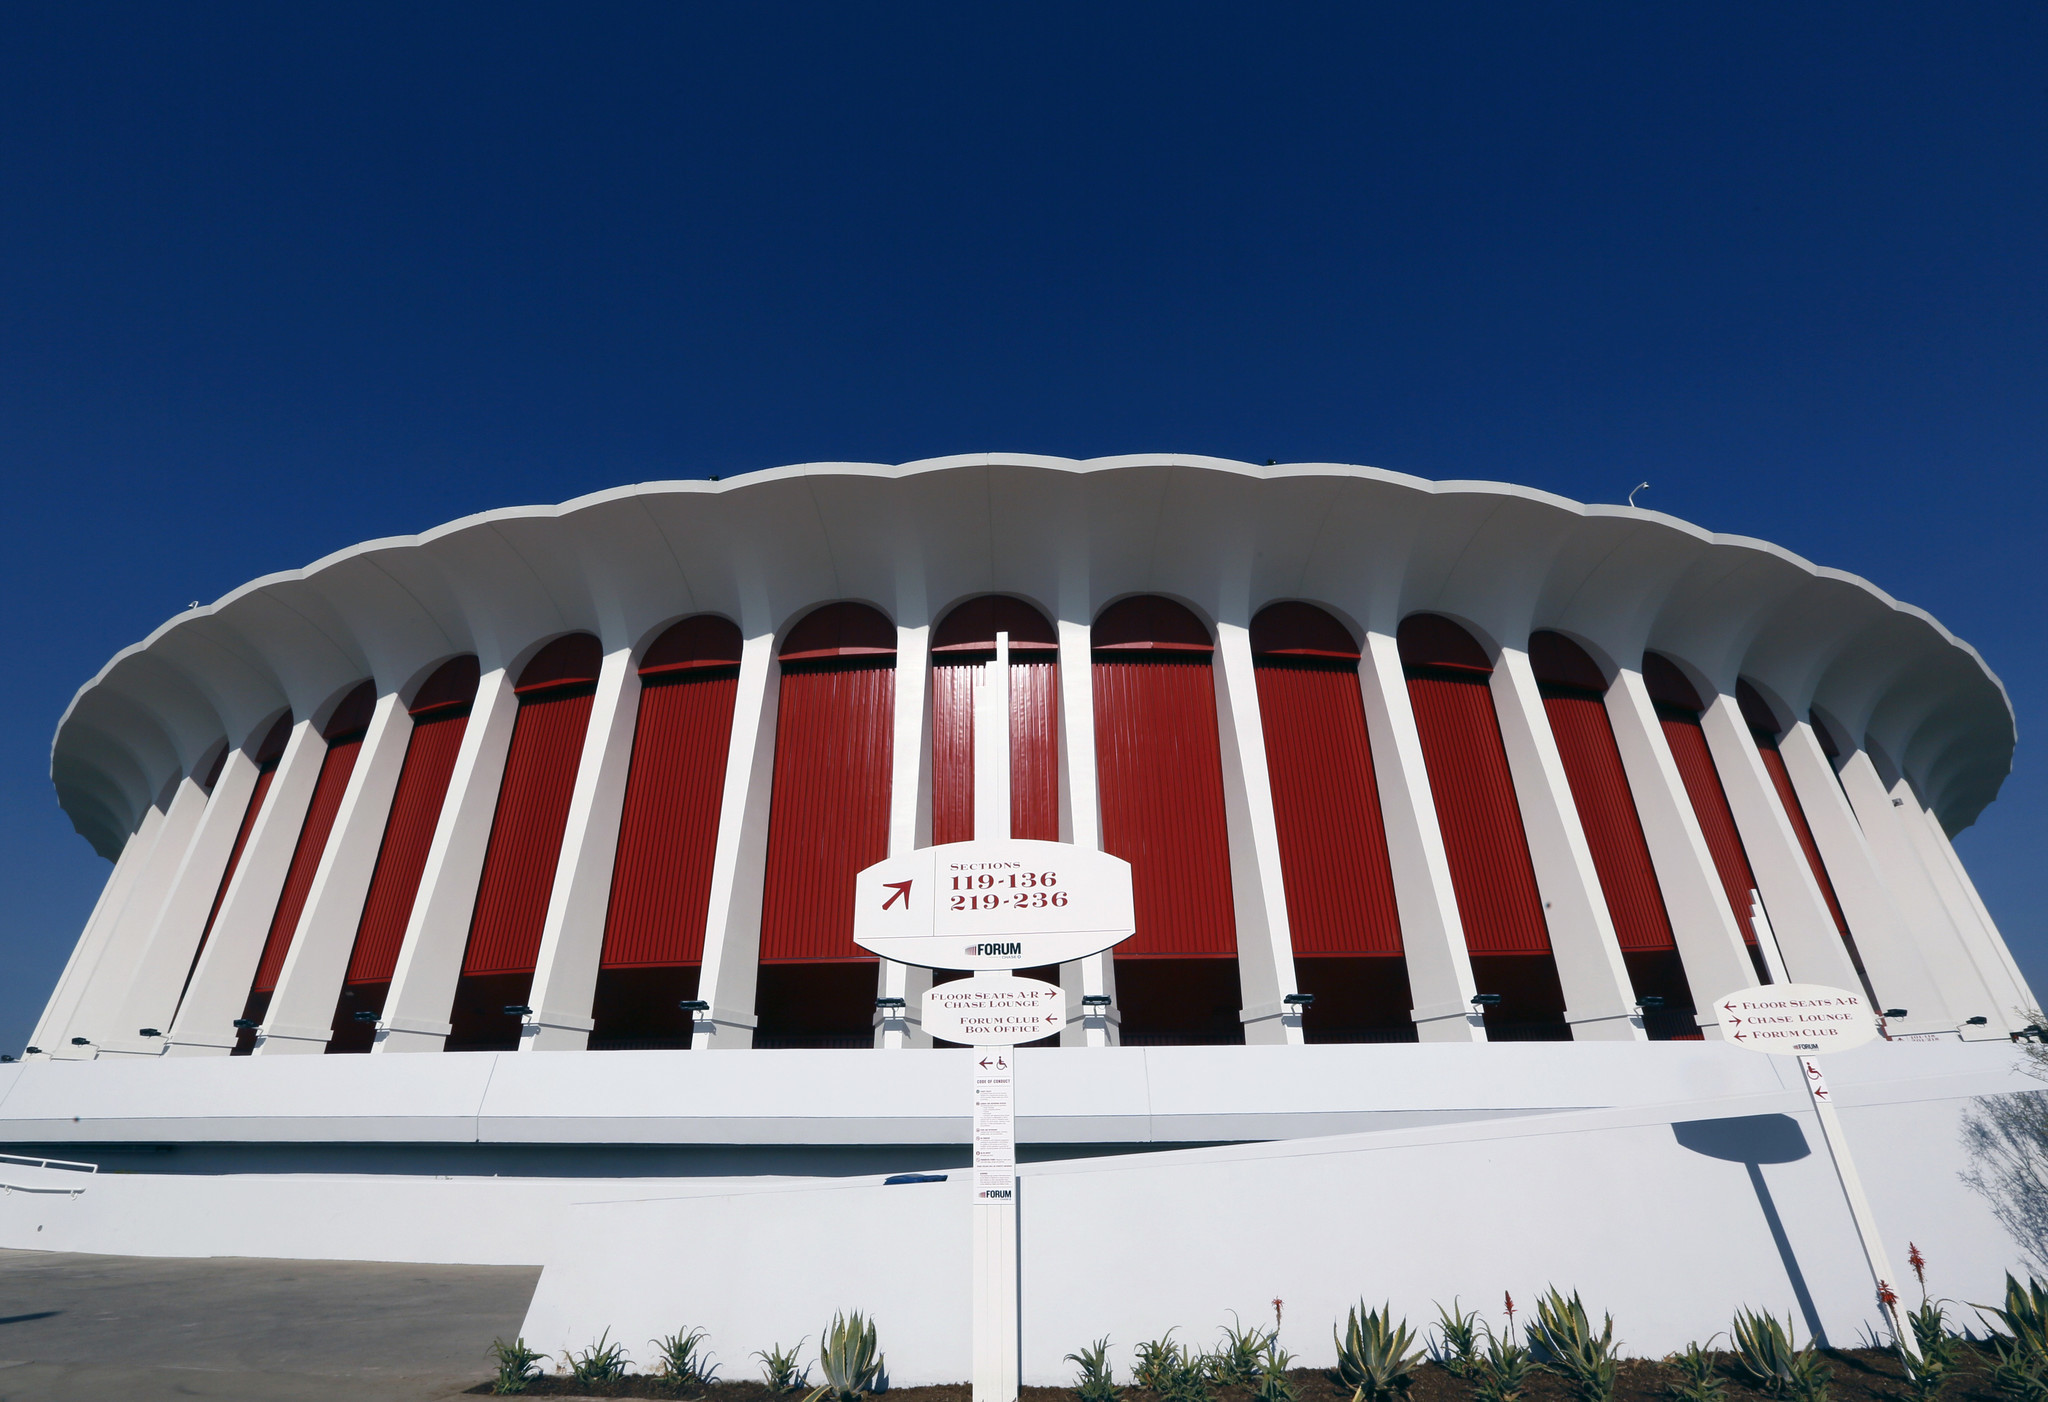 The Sports Report: Would it have again been called the Fabulous Forum?